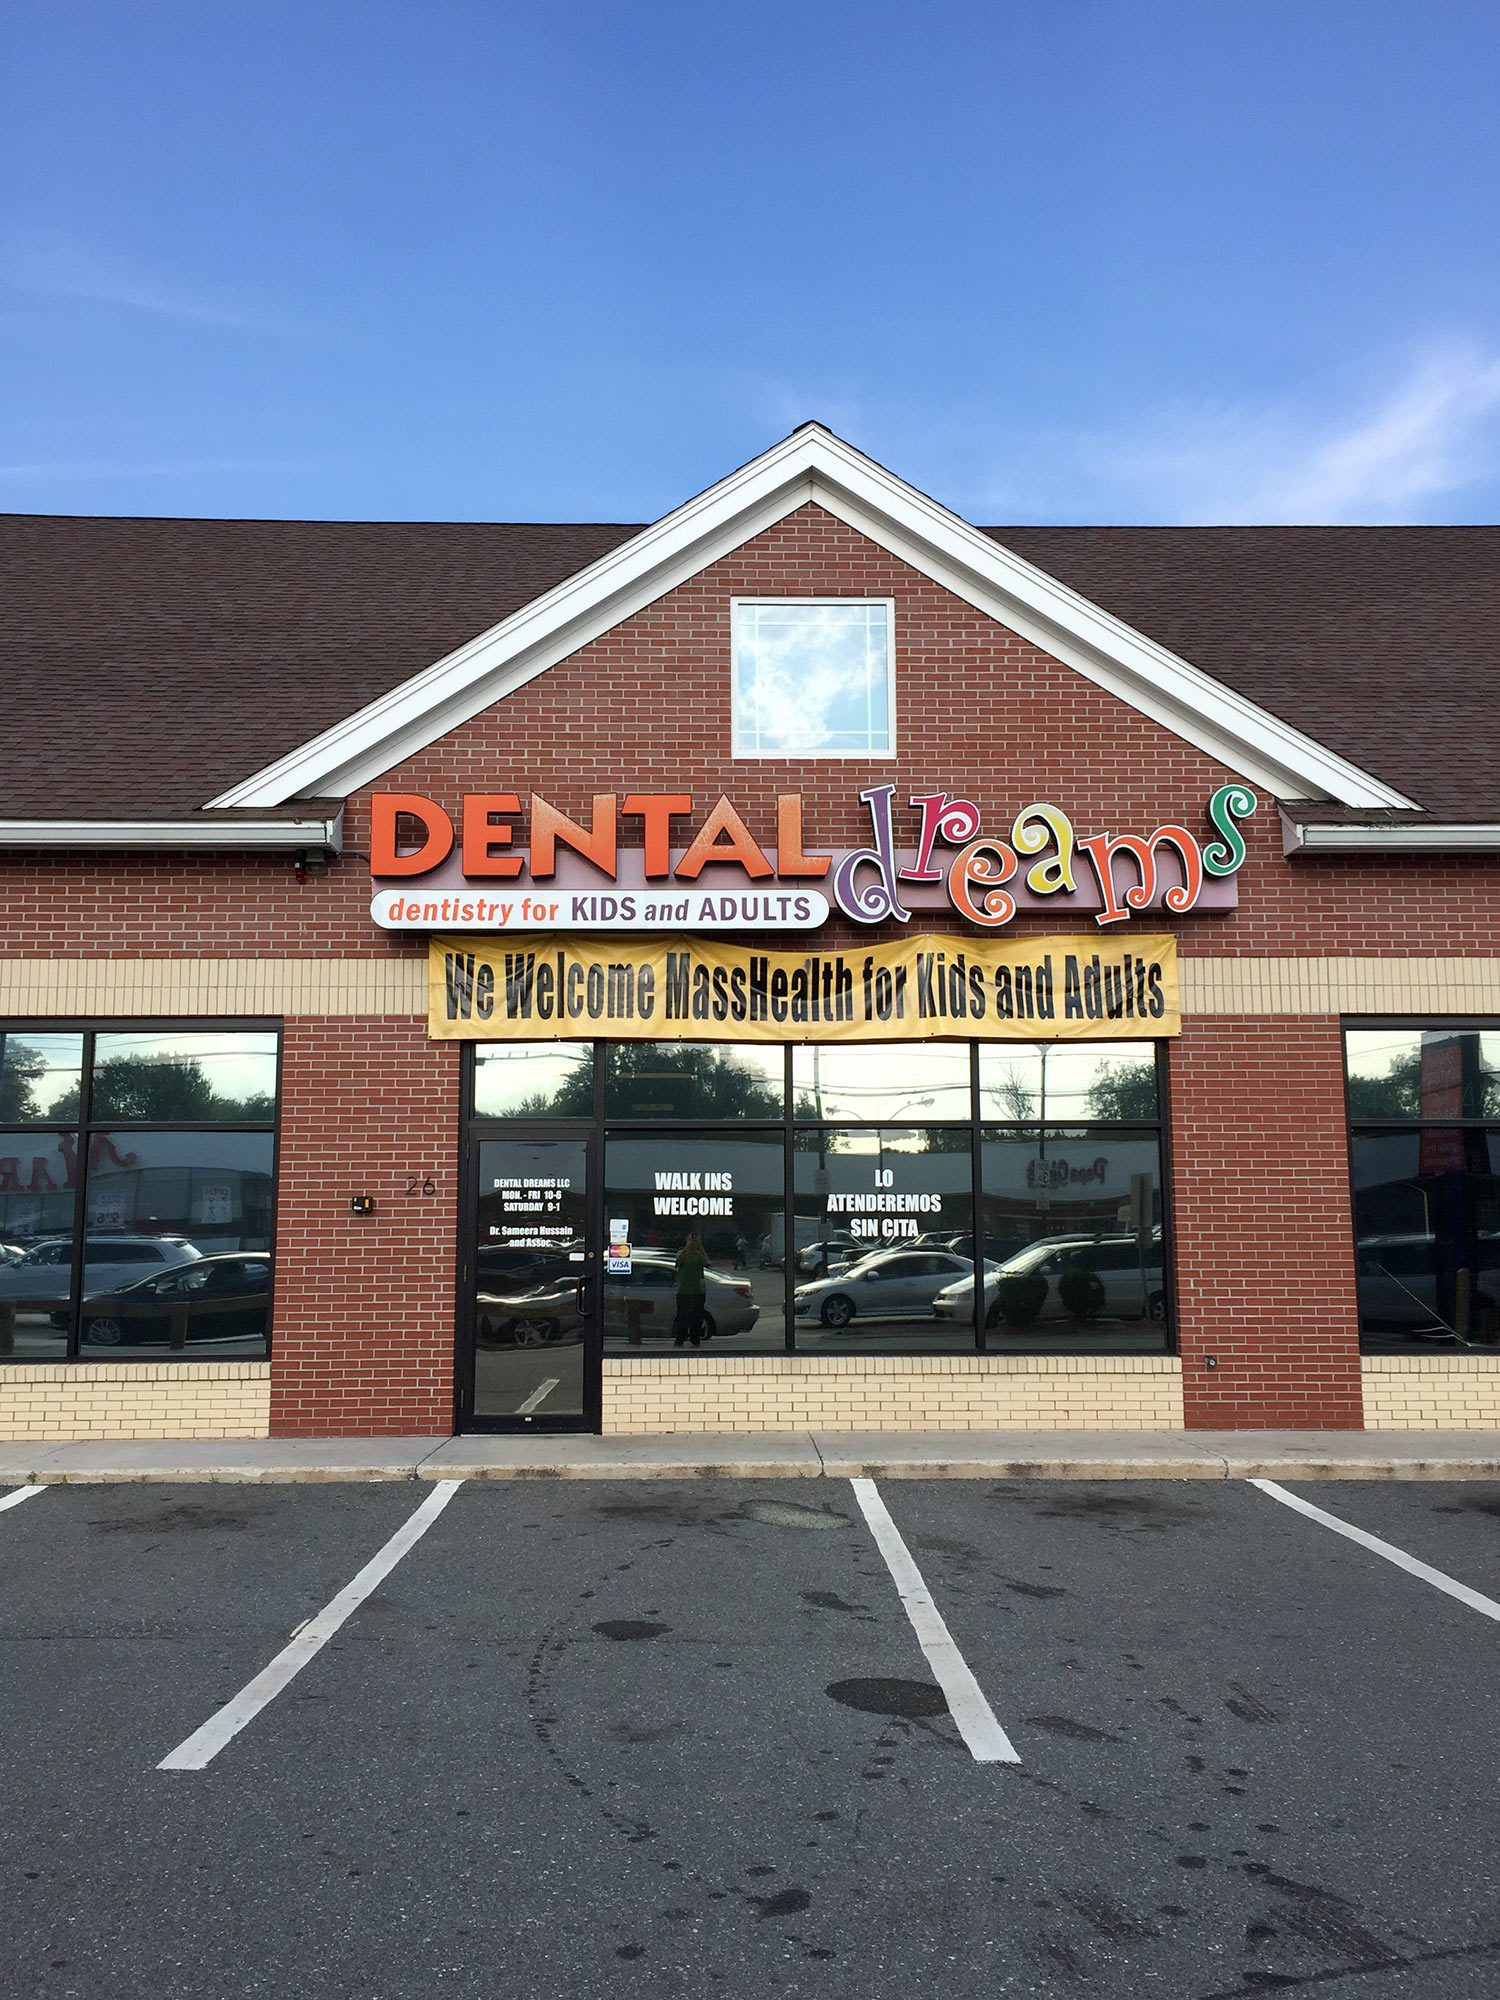 Photo of Dental Dreams - Wood St in Lowell, MA 01851